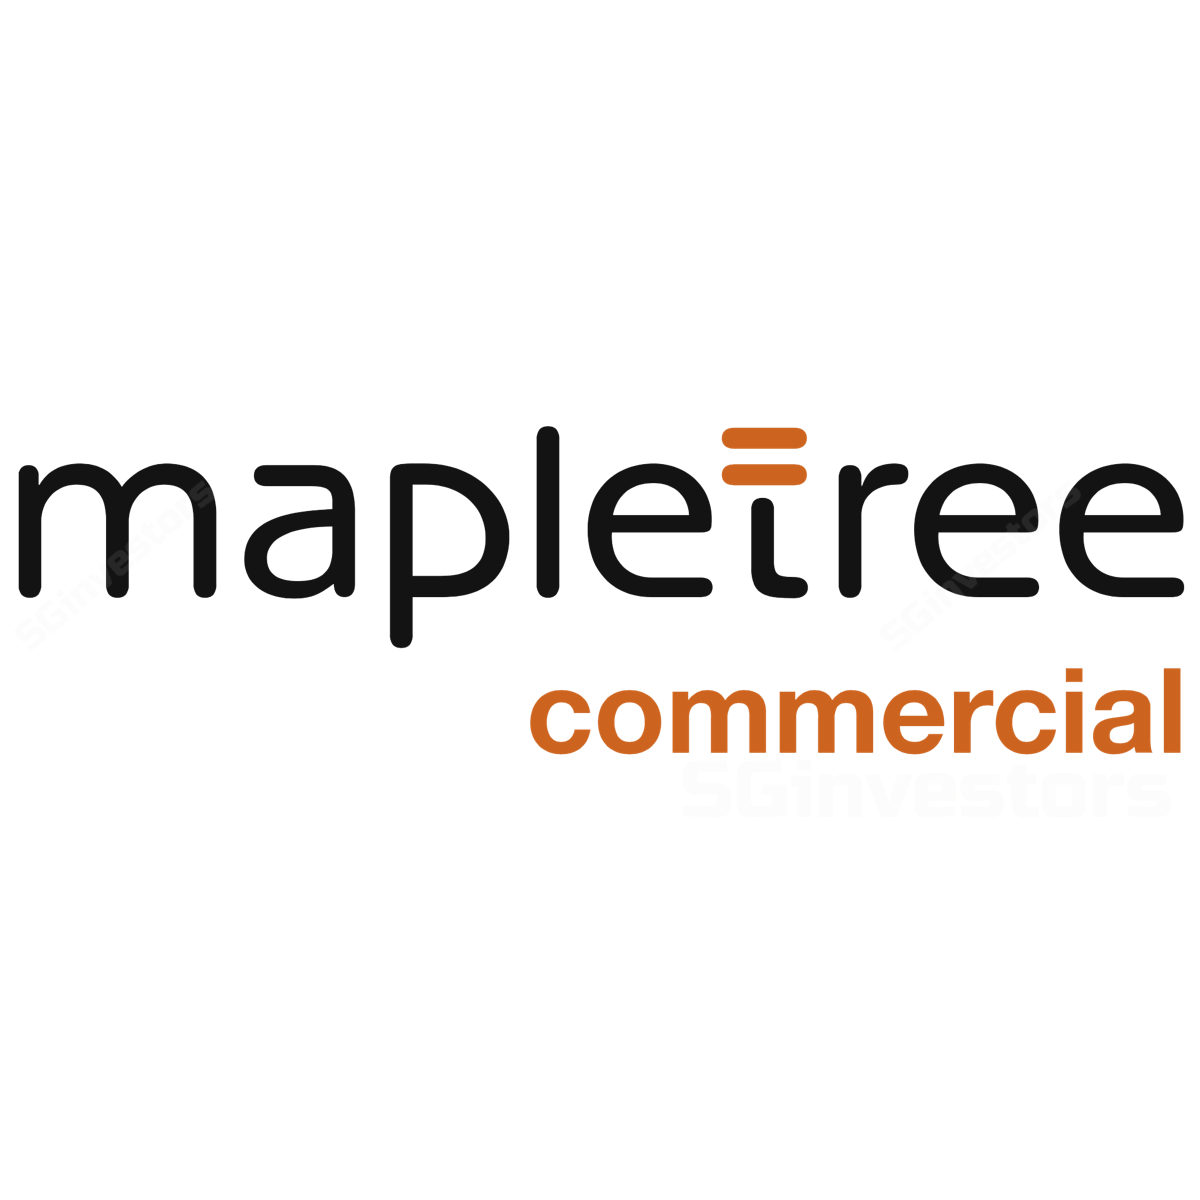 Mapletree Commercial Trust - DBS Group Research Research 2018-07-27: Powering Through Short-term Disruptions